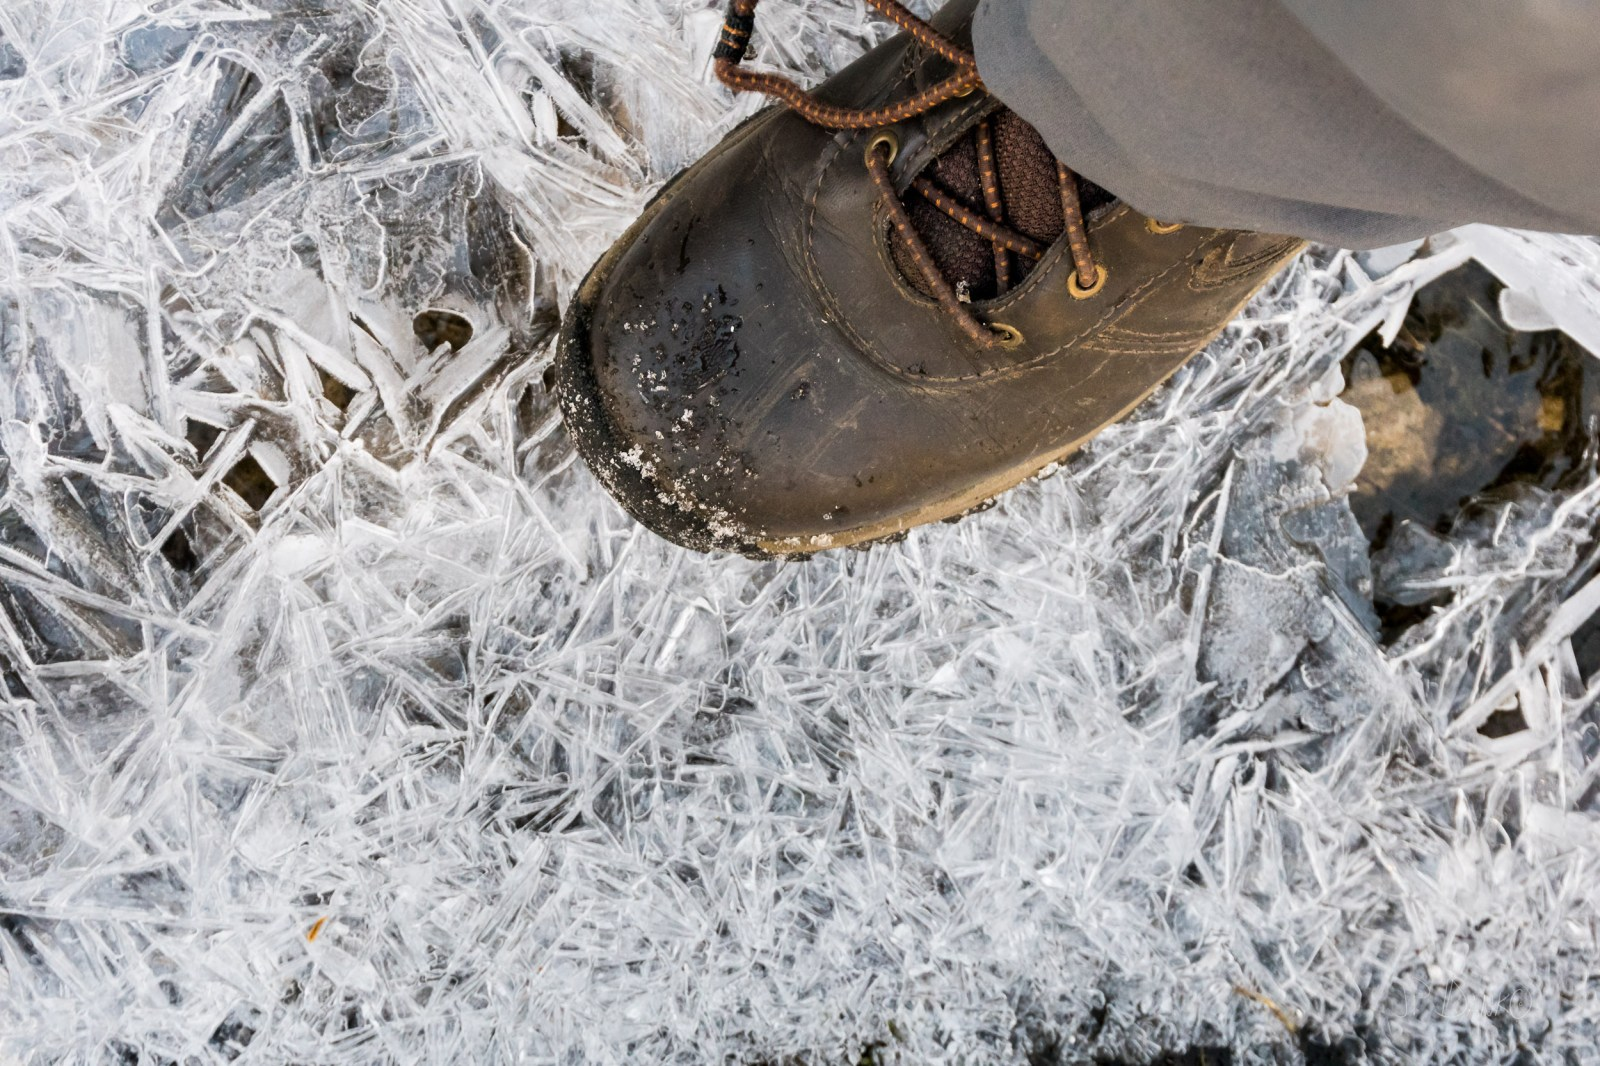 Boot stepping onto thin surface ice of lake as planet warms